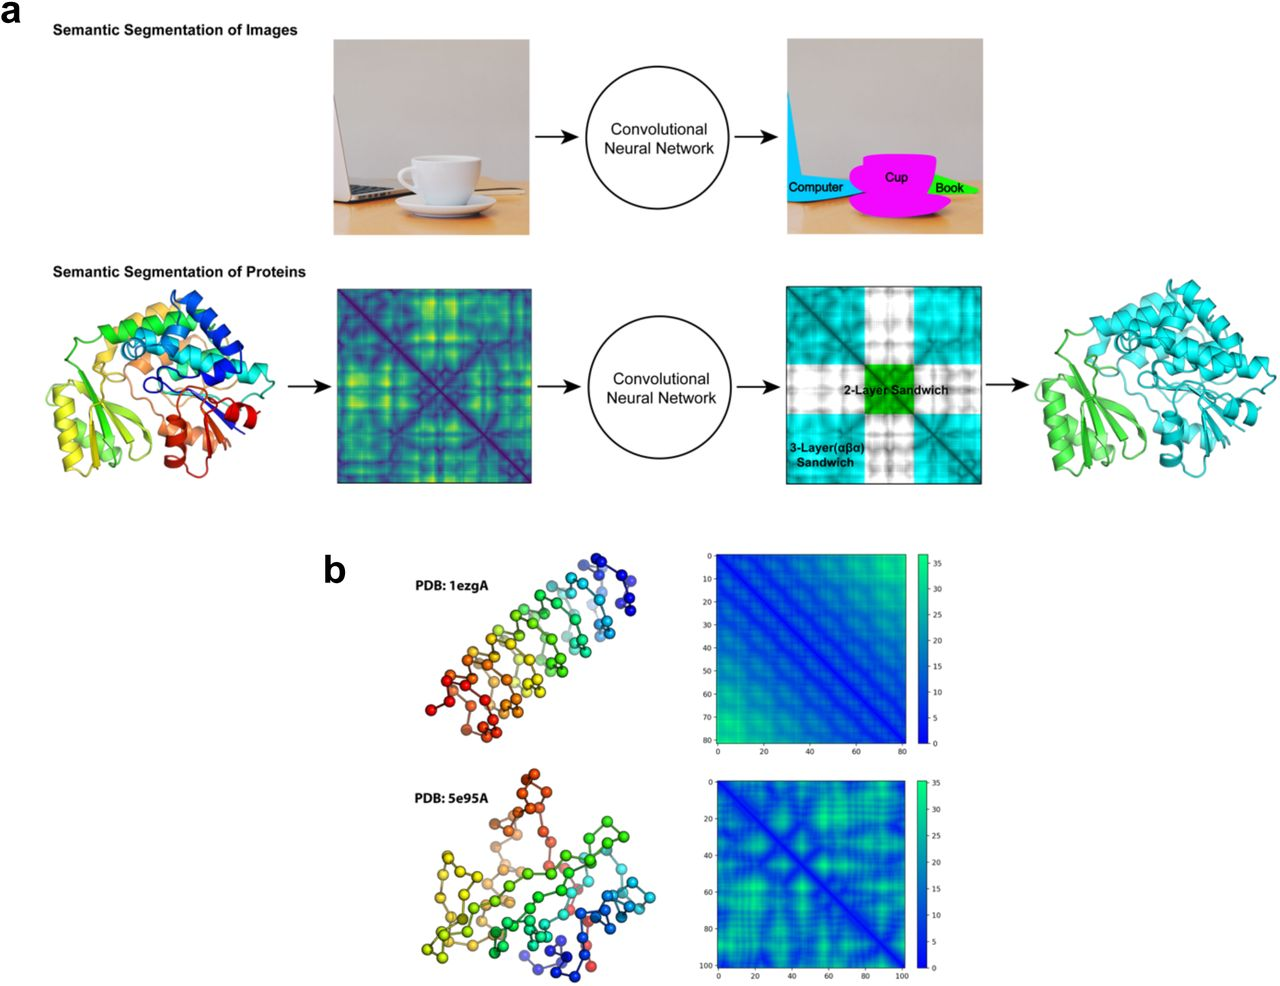 Multi-Scale Structural Analysis of Proteins by Deep Semantic